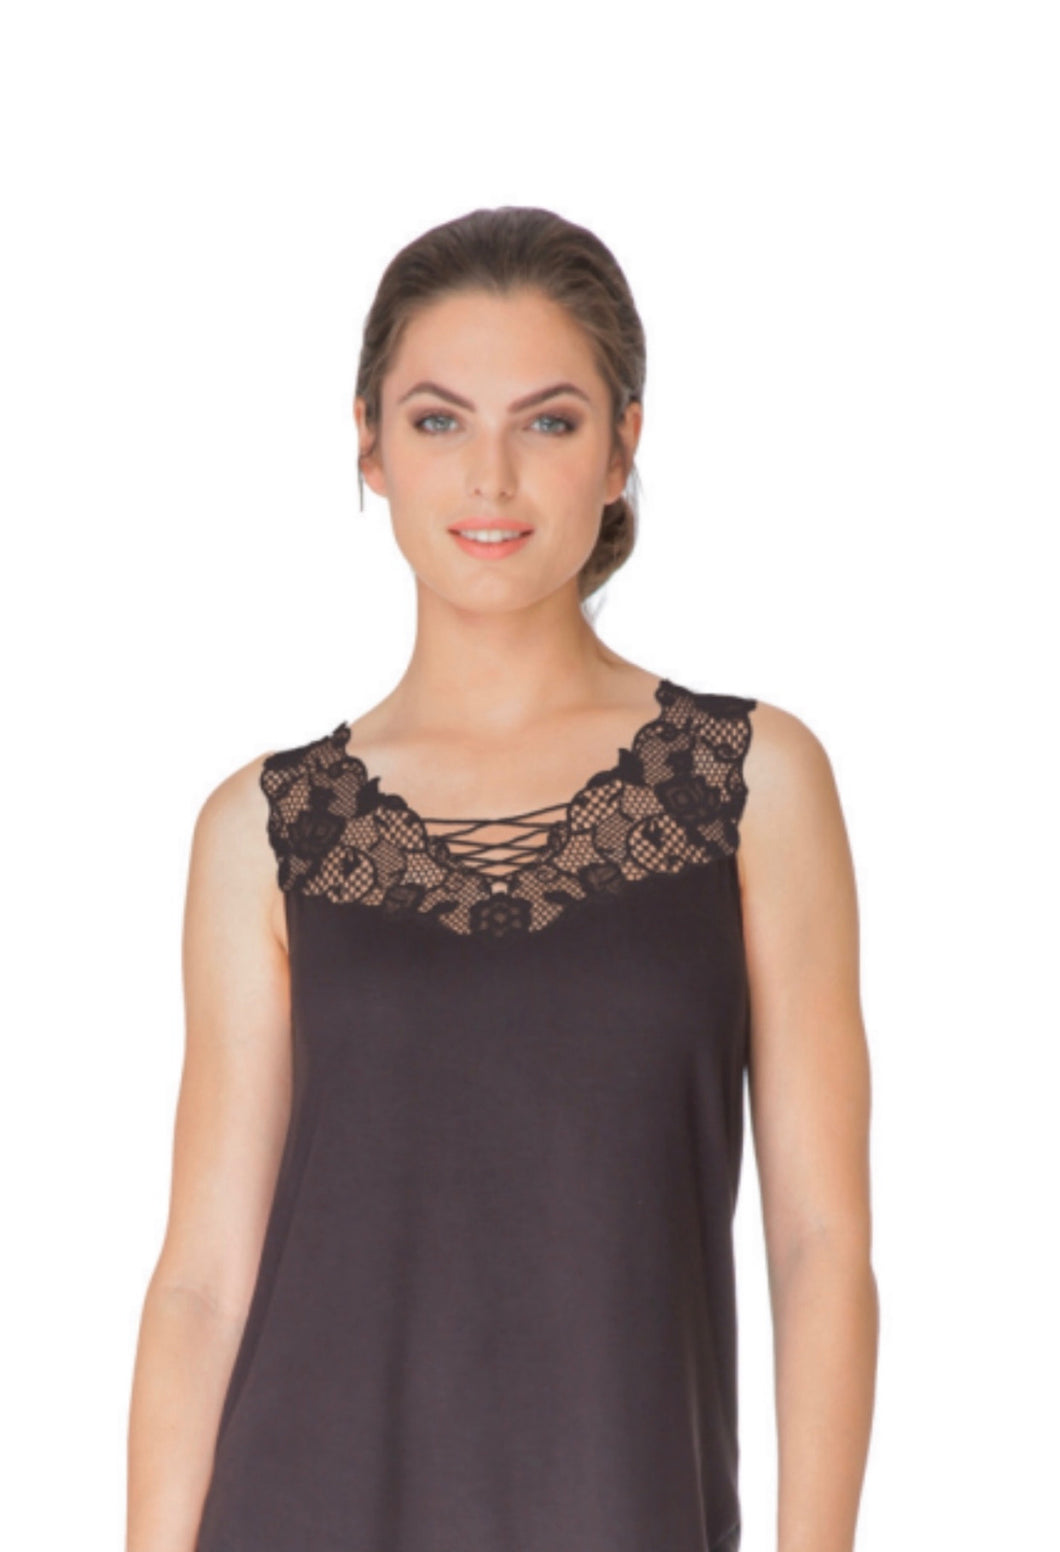 Tunic with Lace Effect Applique